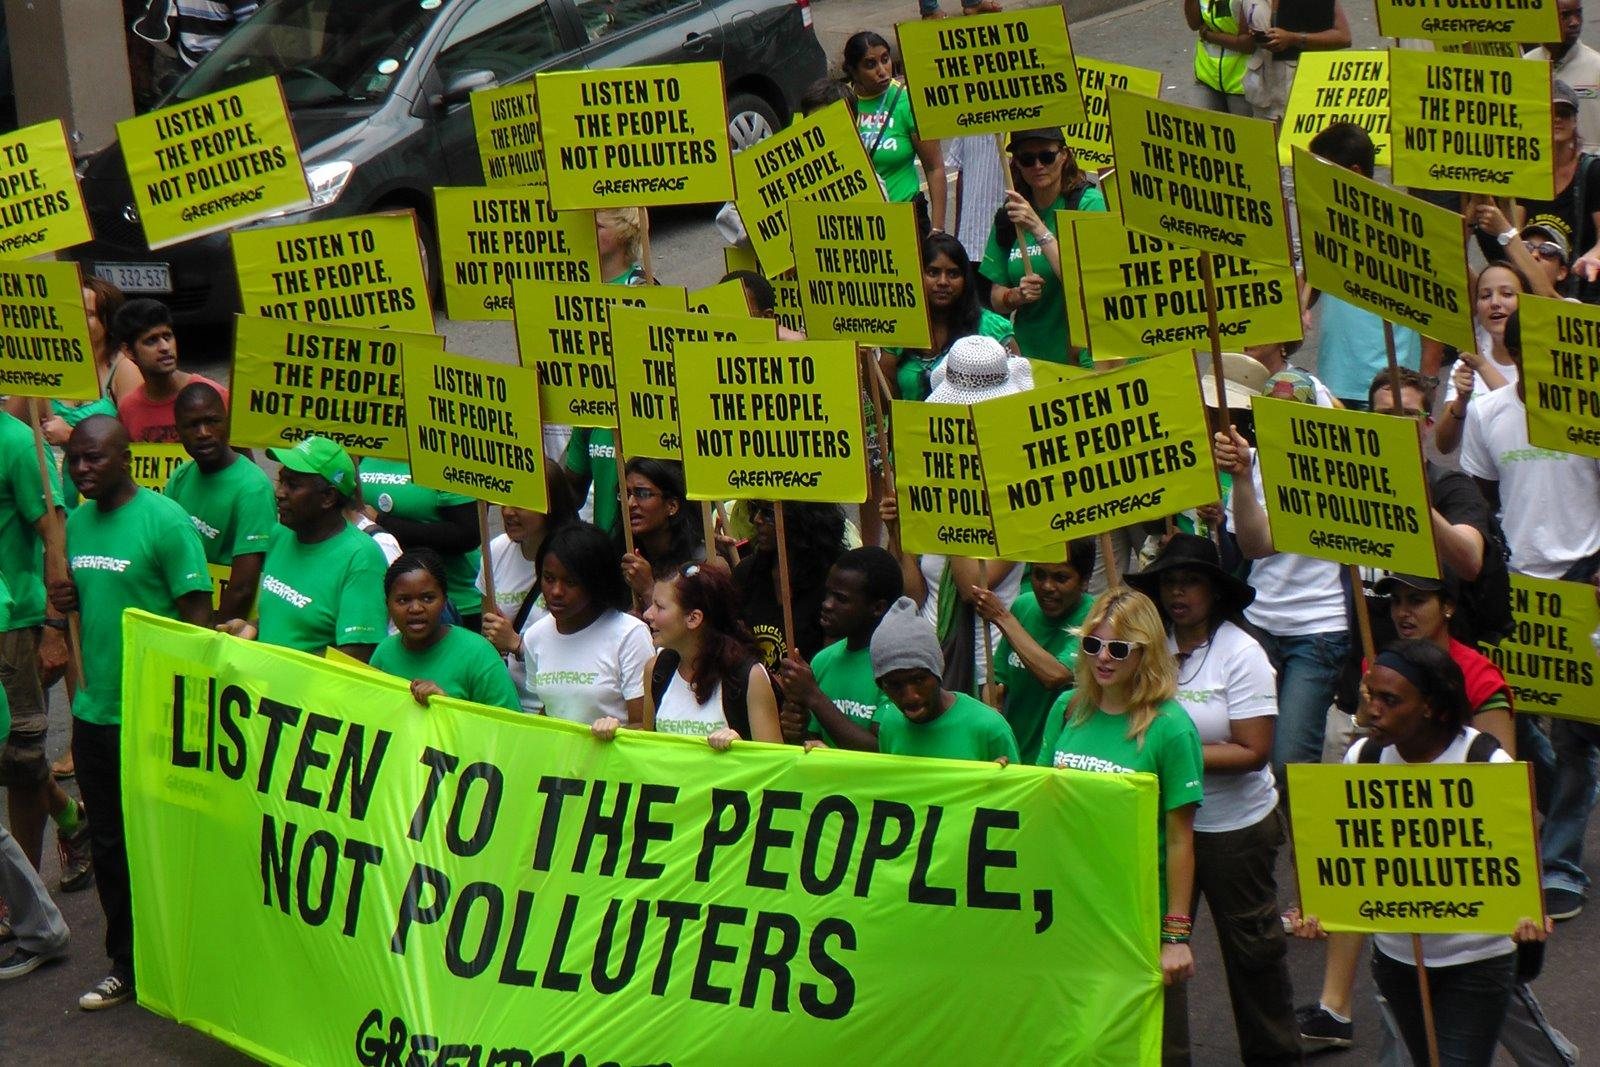 Durban people not polluters_GJEP